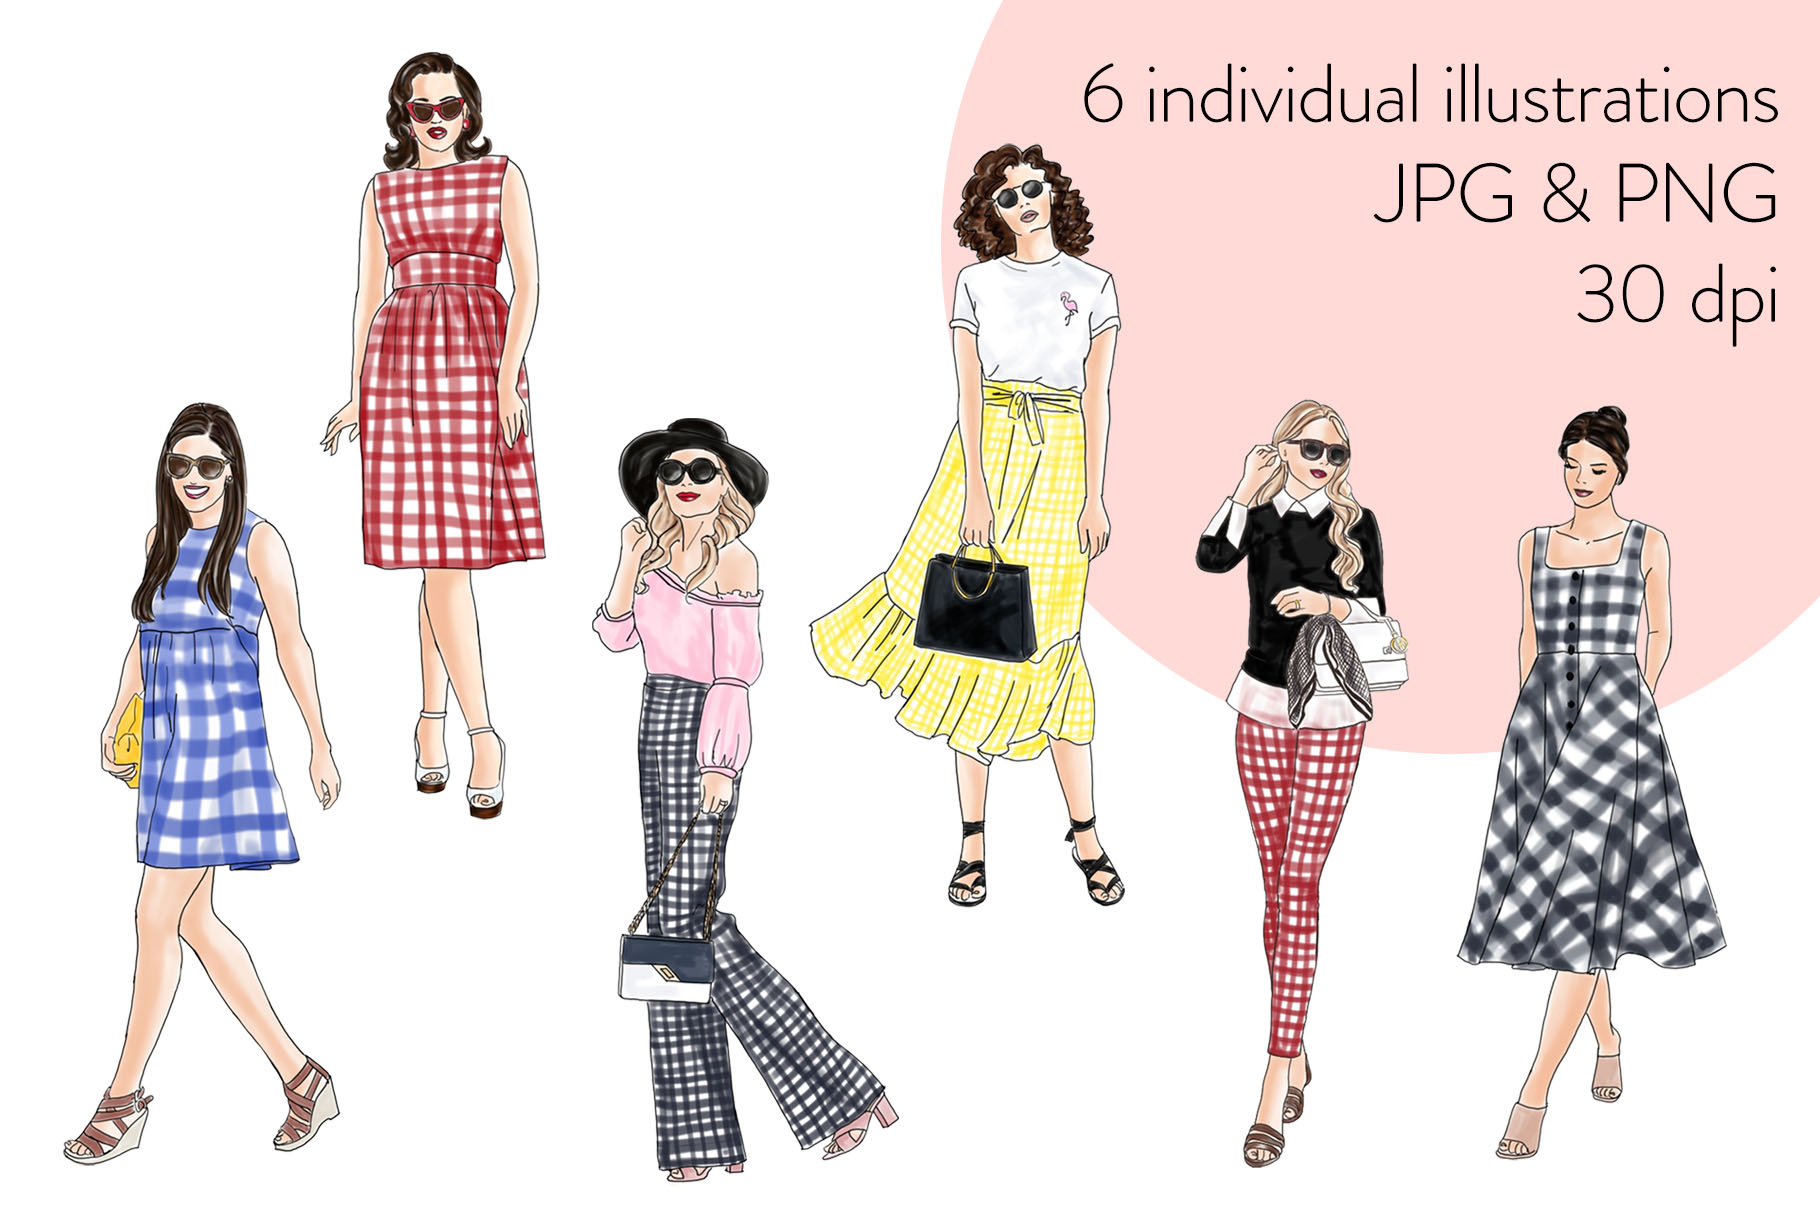 Fashion illustration clipart - Girls in Gingham - Light Skin example image 2